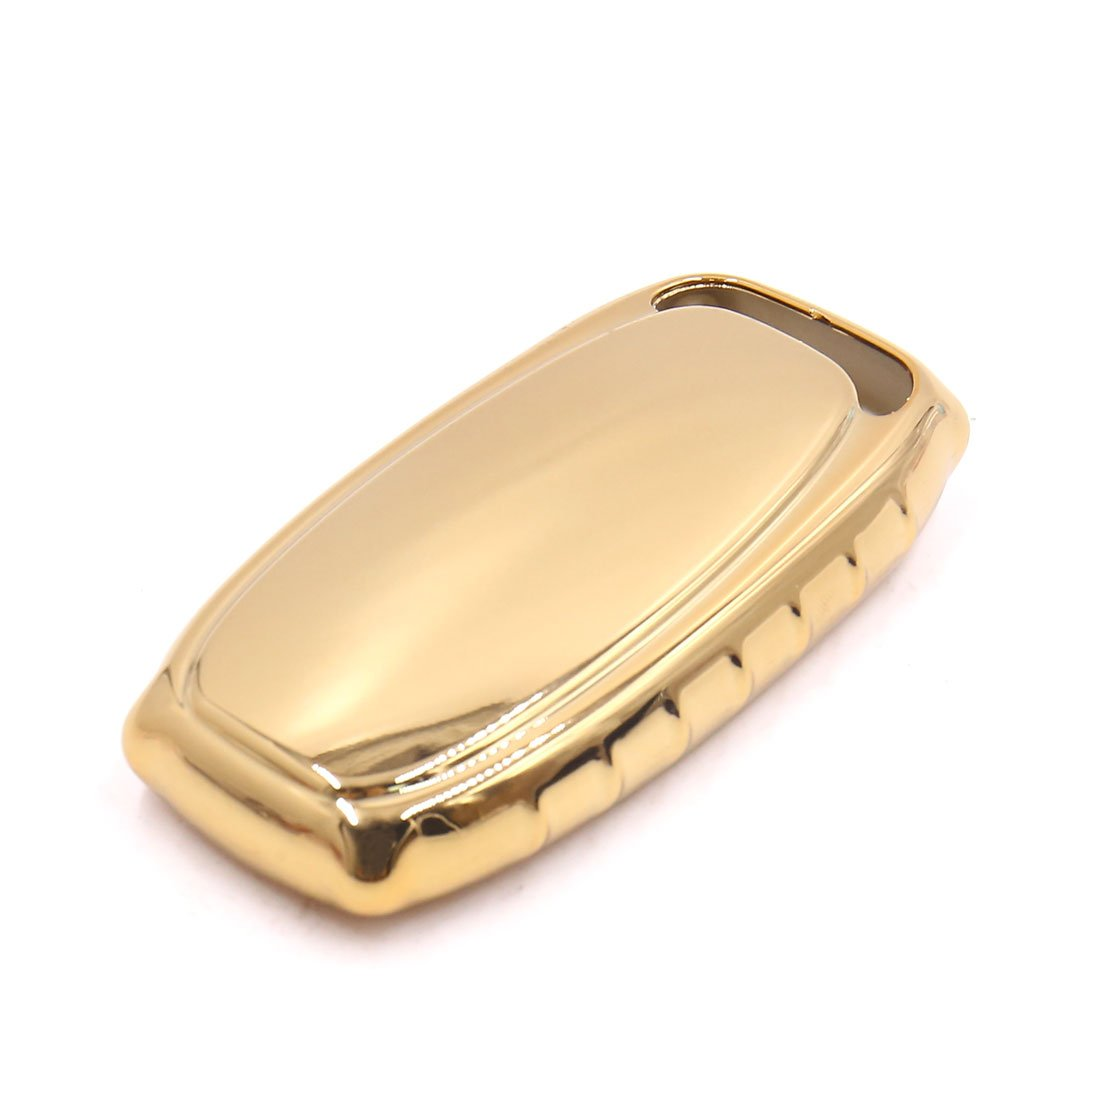 uxcell Gold Tone Remote Key Case Holder Shell Cover Fit For Audi A4L A6L A7 A8 S5 by uxcell